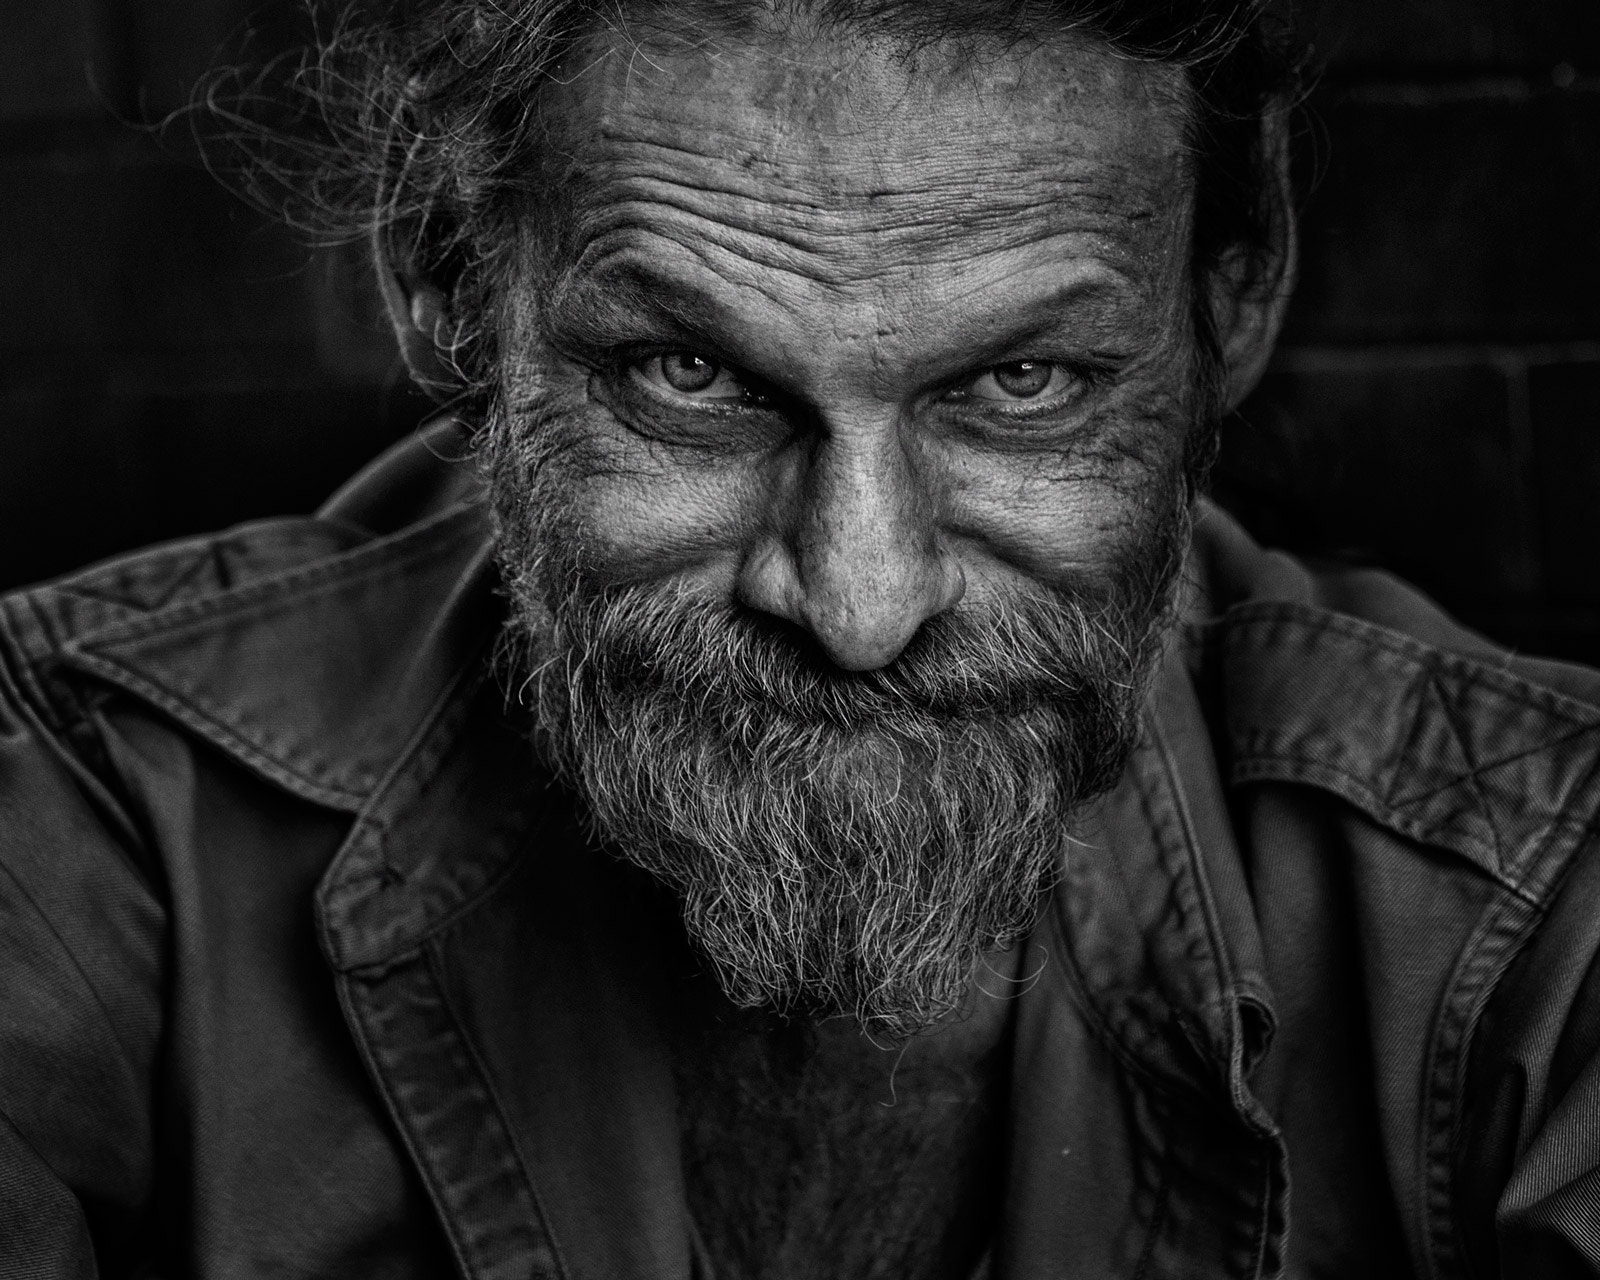 Photograph The Joker by Russ Elkins on 500px